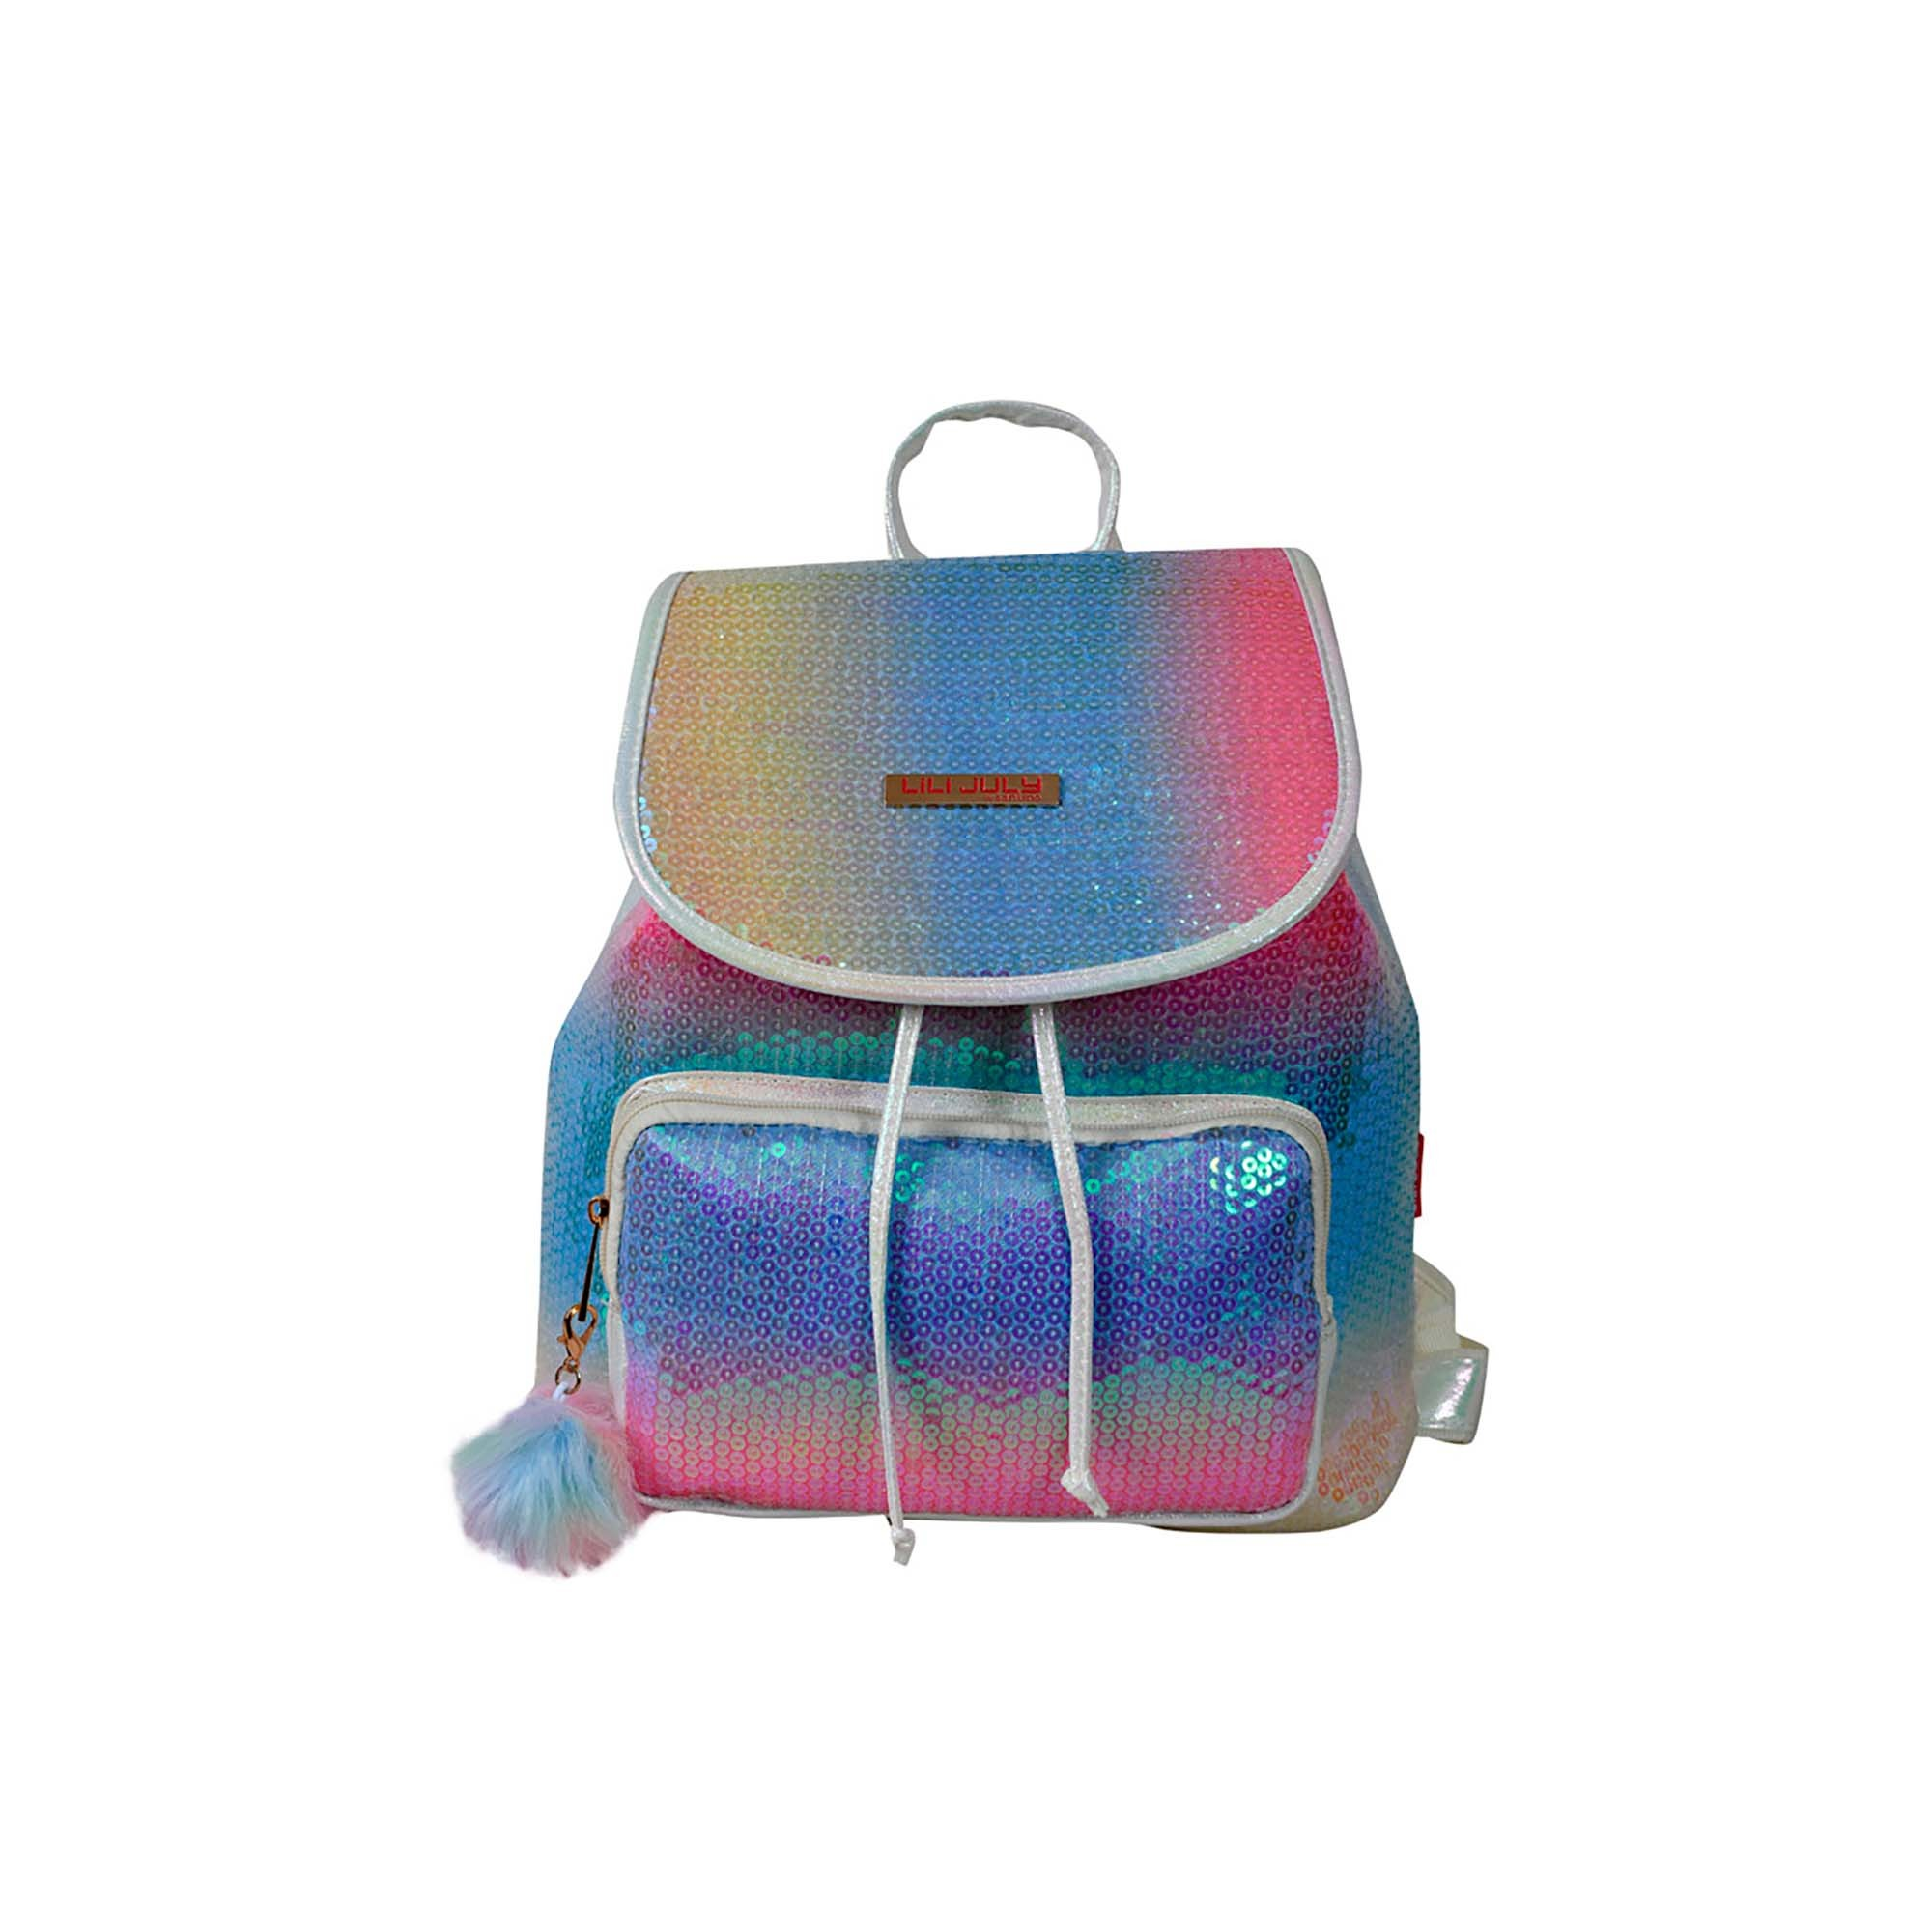 MOCHILA COLORIDA INFANTIL POL LILI JULY - LJM26U30